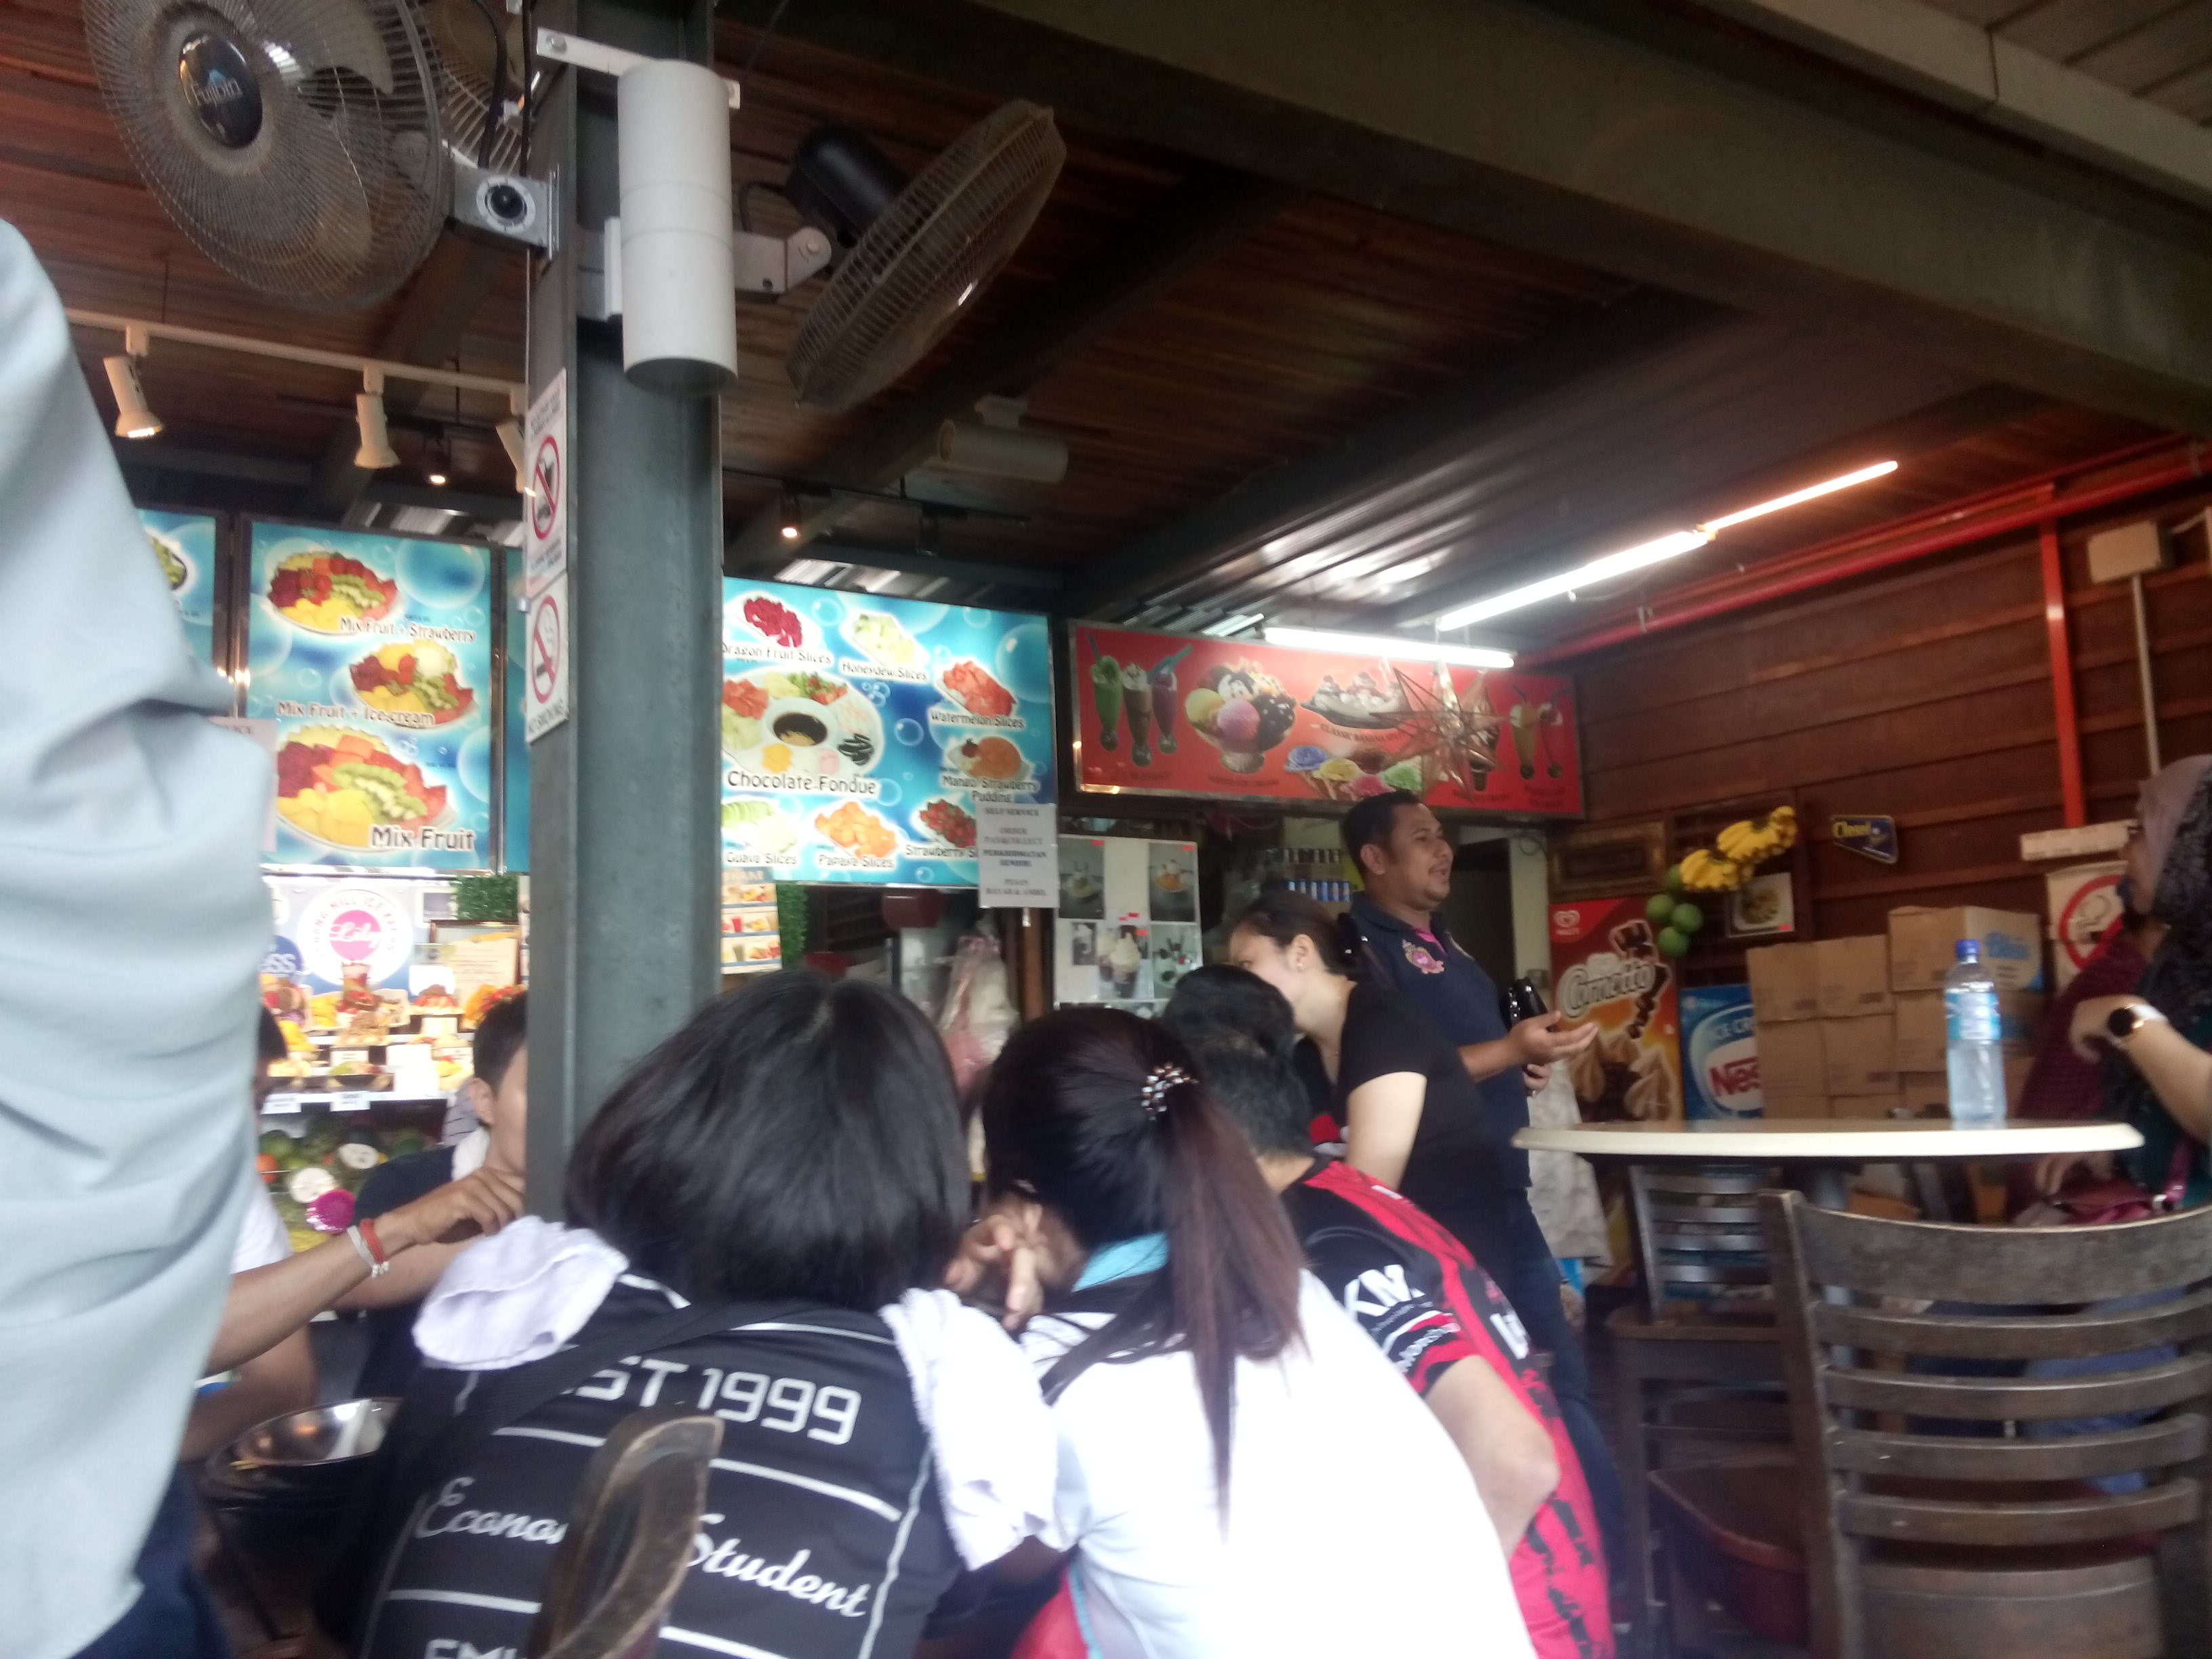 Food stands and people inside a wooden building